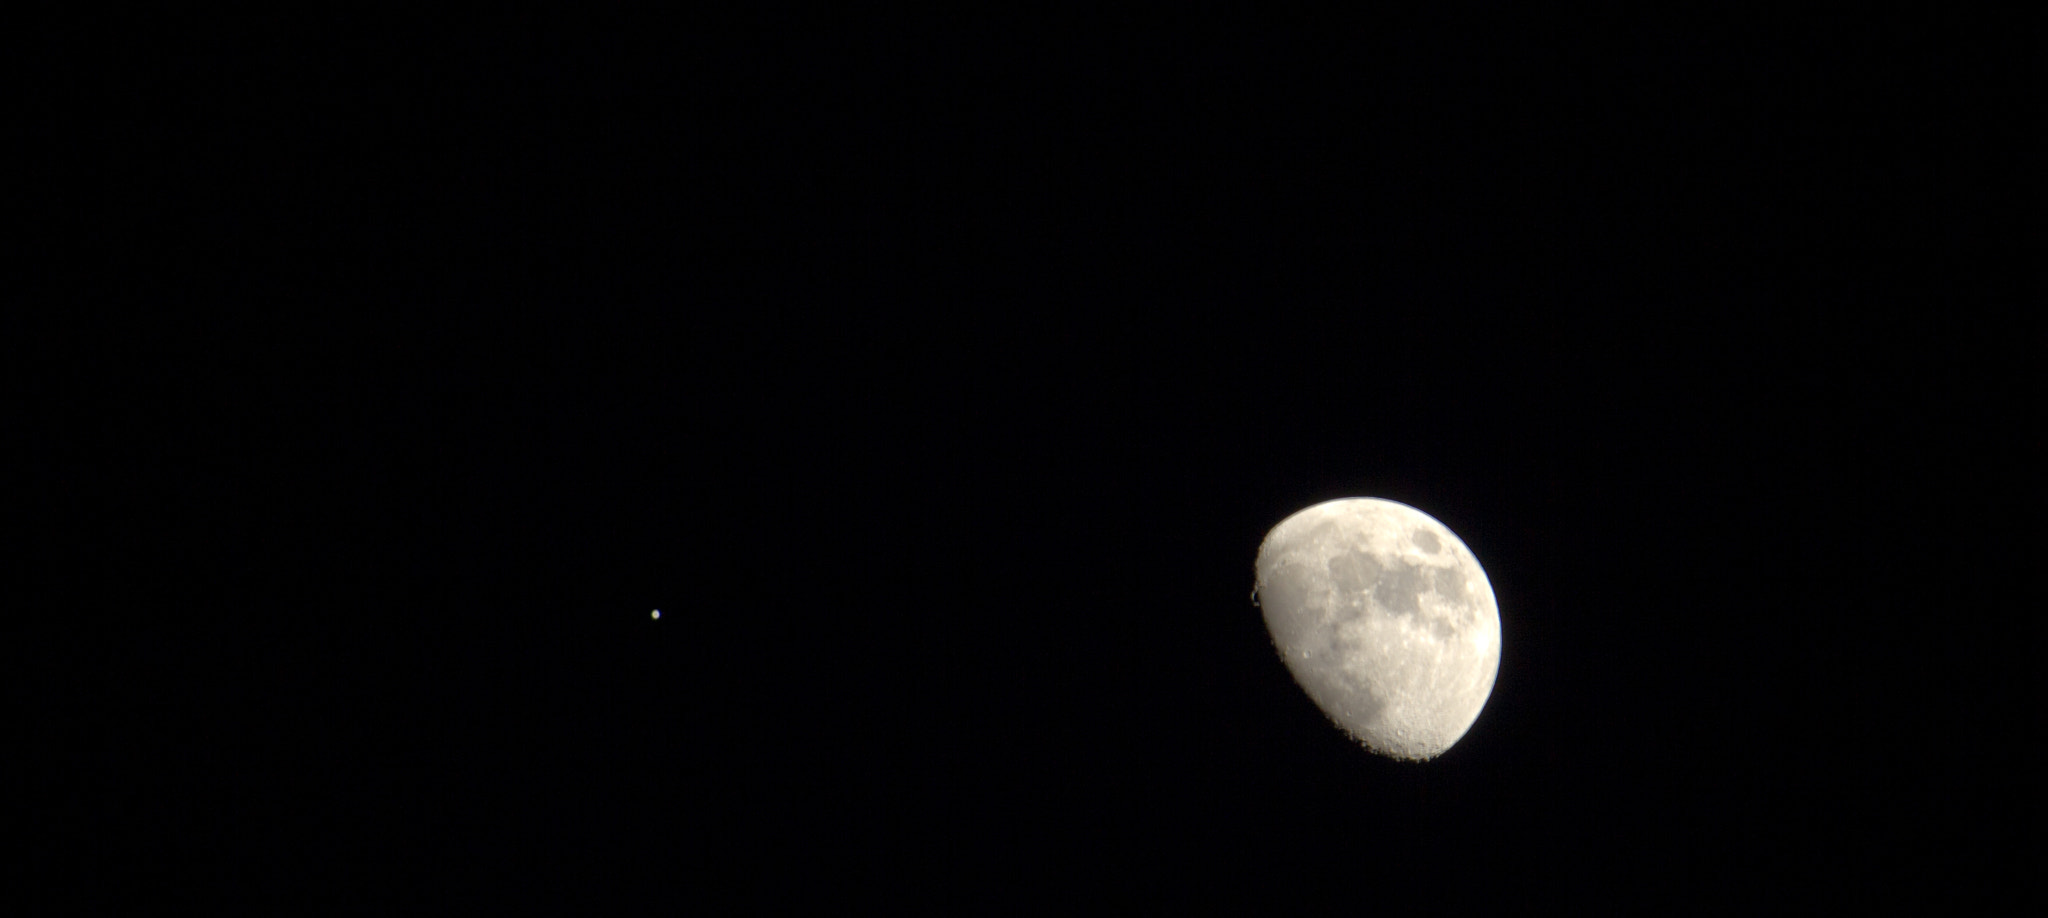 Photograph Jupiter and The Moon by James M on 500px